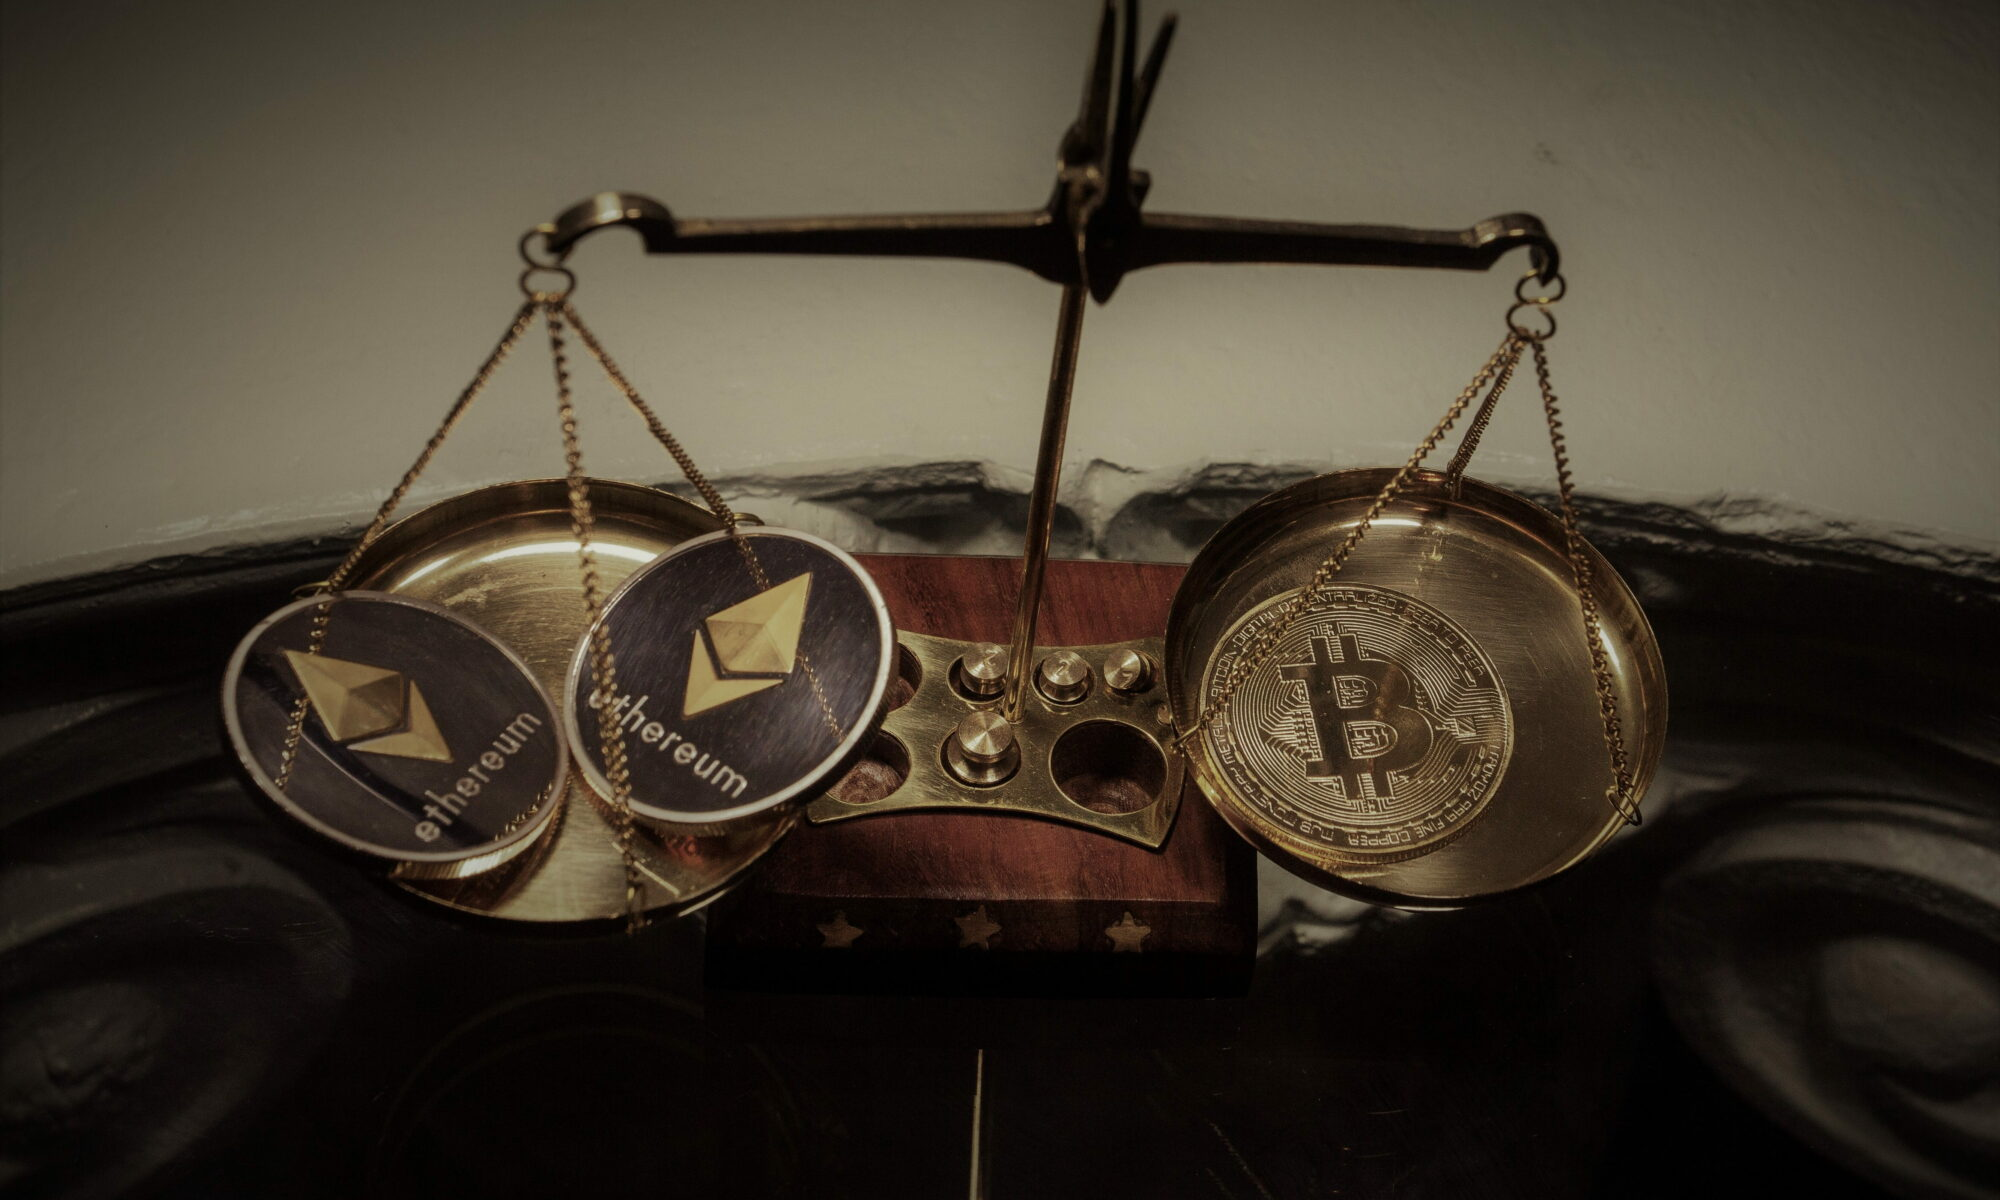 bitcoin and ethereum are placed on a balance to be differentiating with two ethereum coins and one bitcoin.